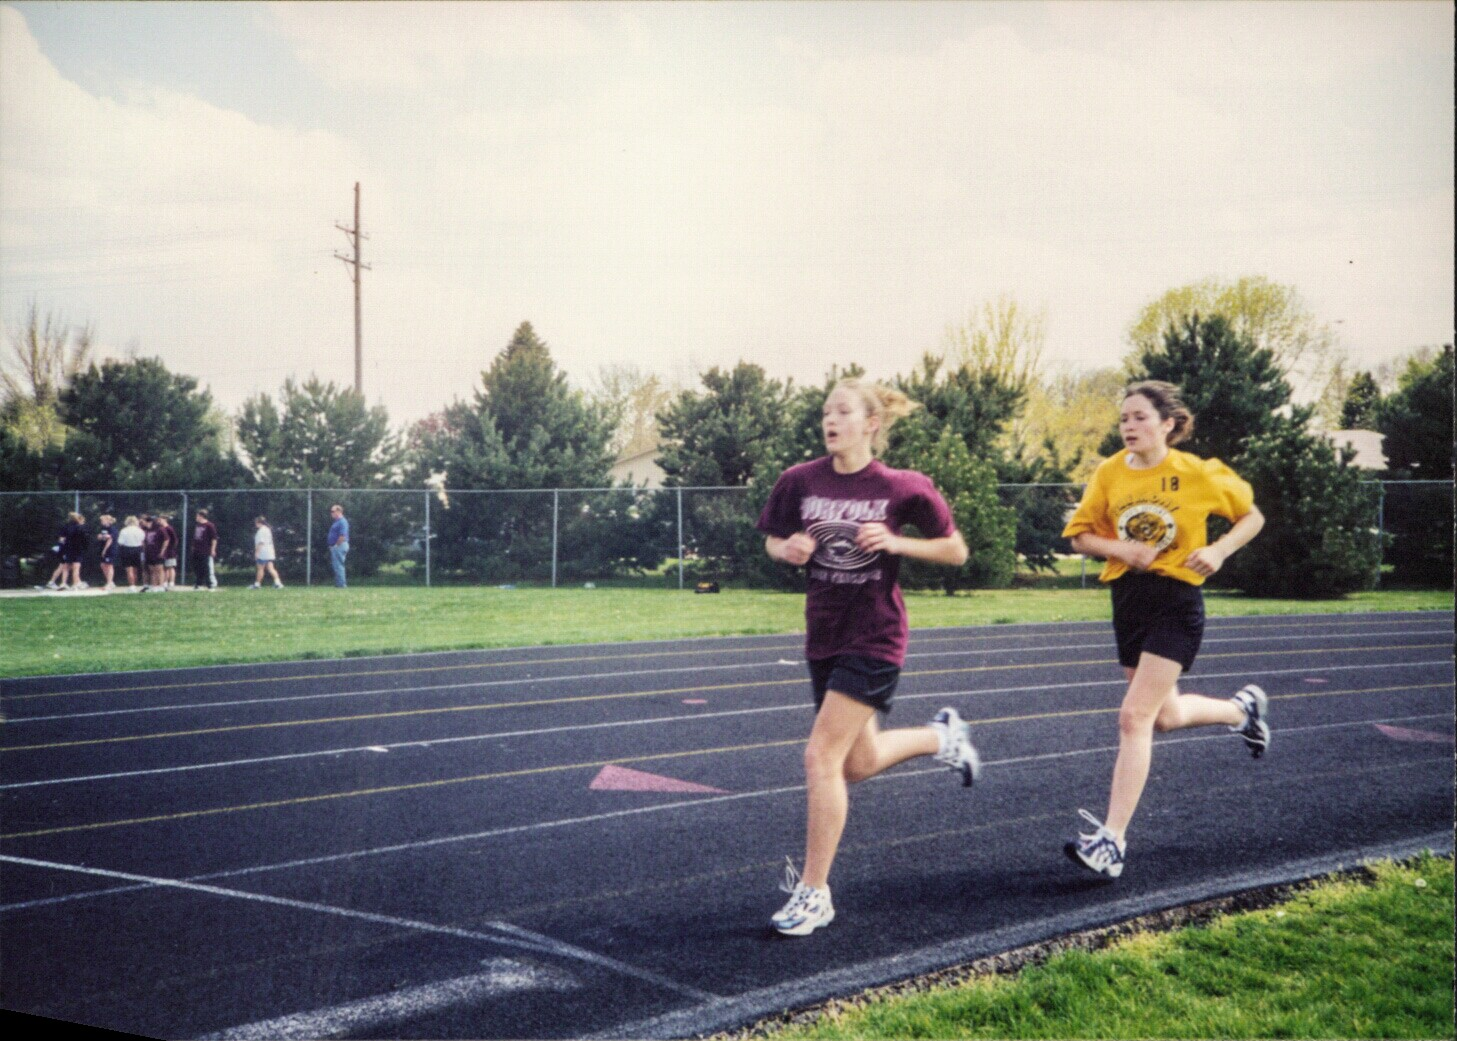 Middle school mile